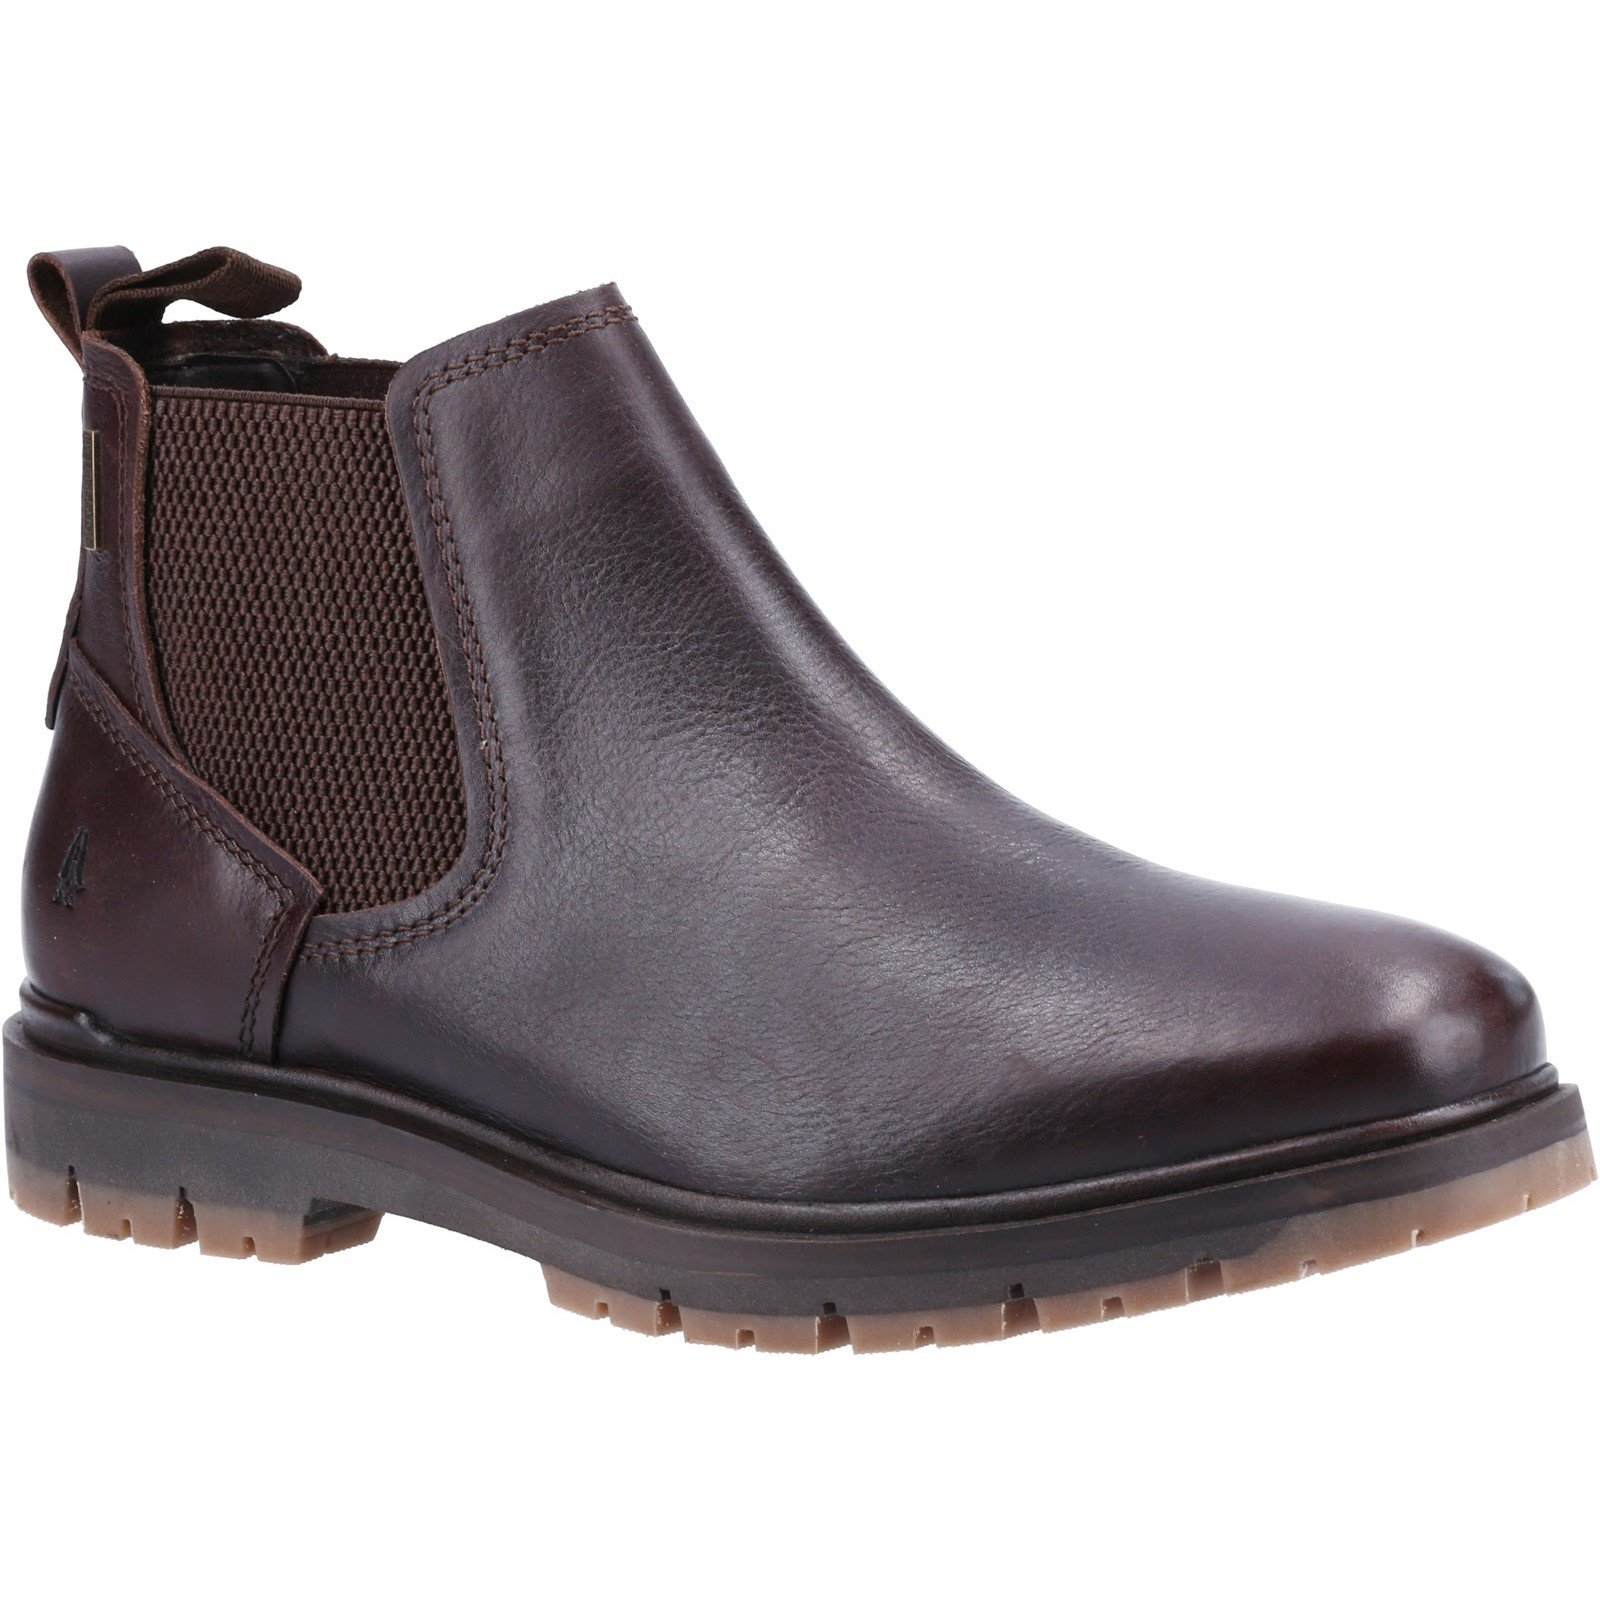 Hush Puppies Men's Paxton Chelsea Boot Various Colours 32882 - Brown 7